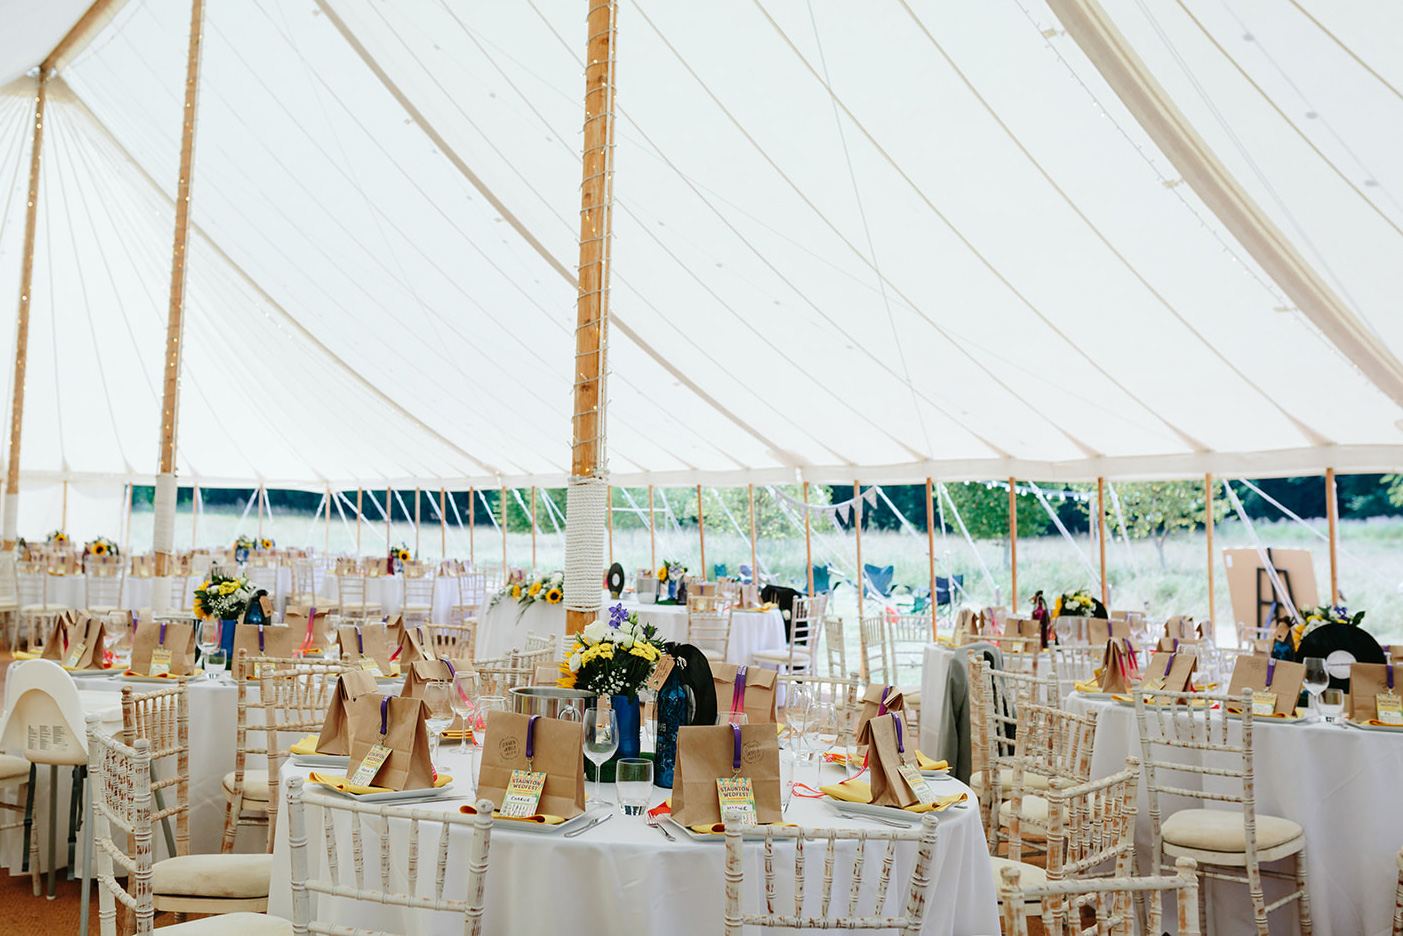 festival wedding tipi tent room decoration ideas